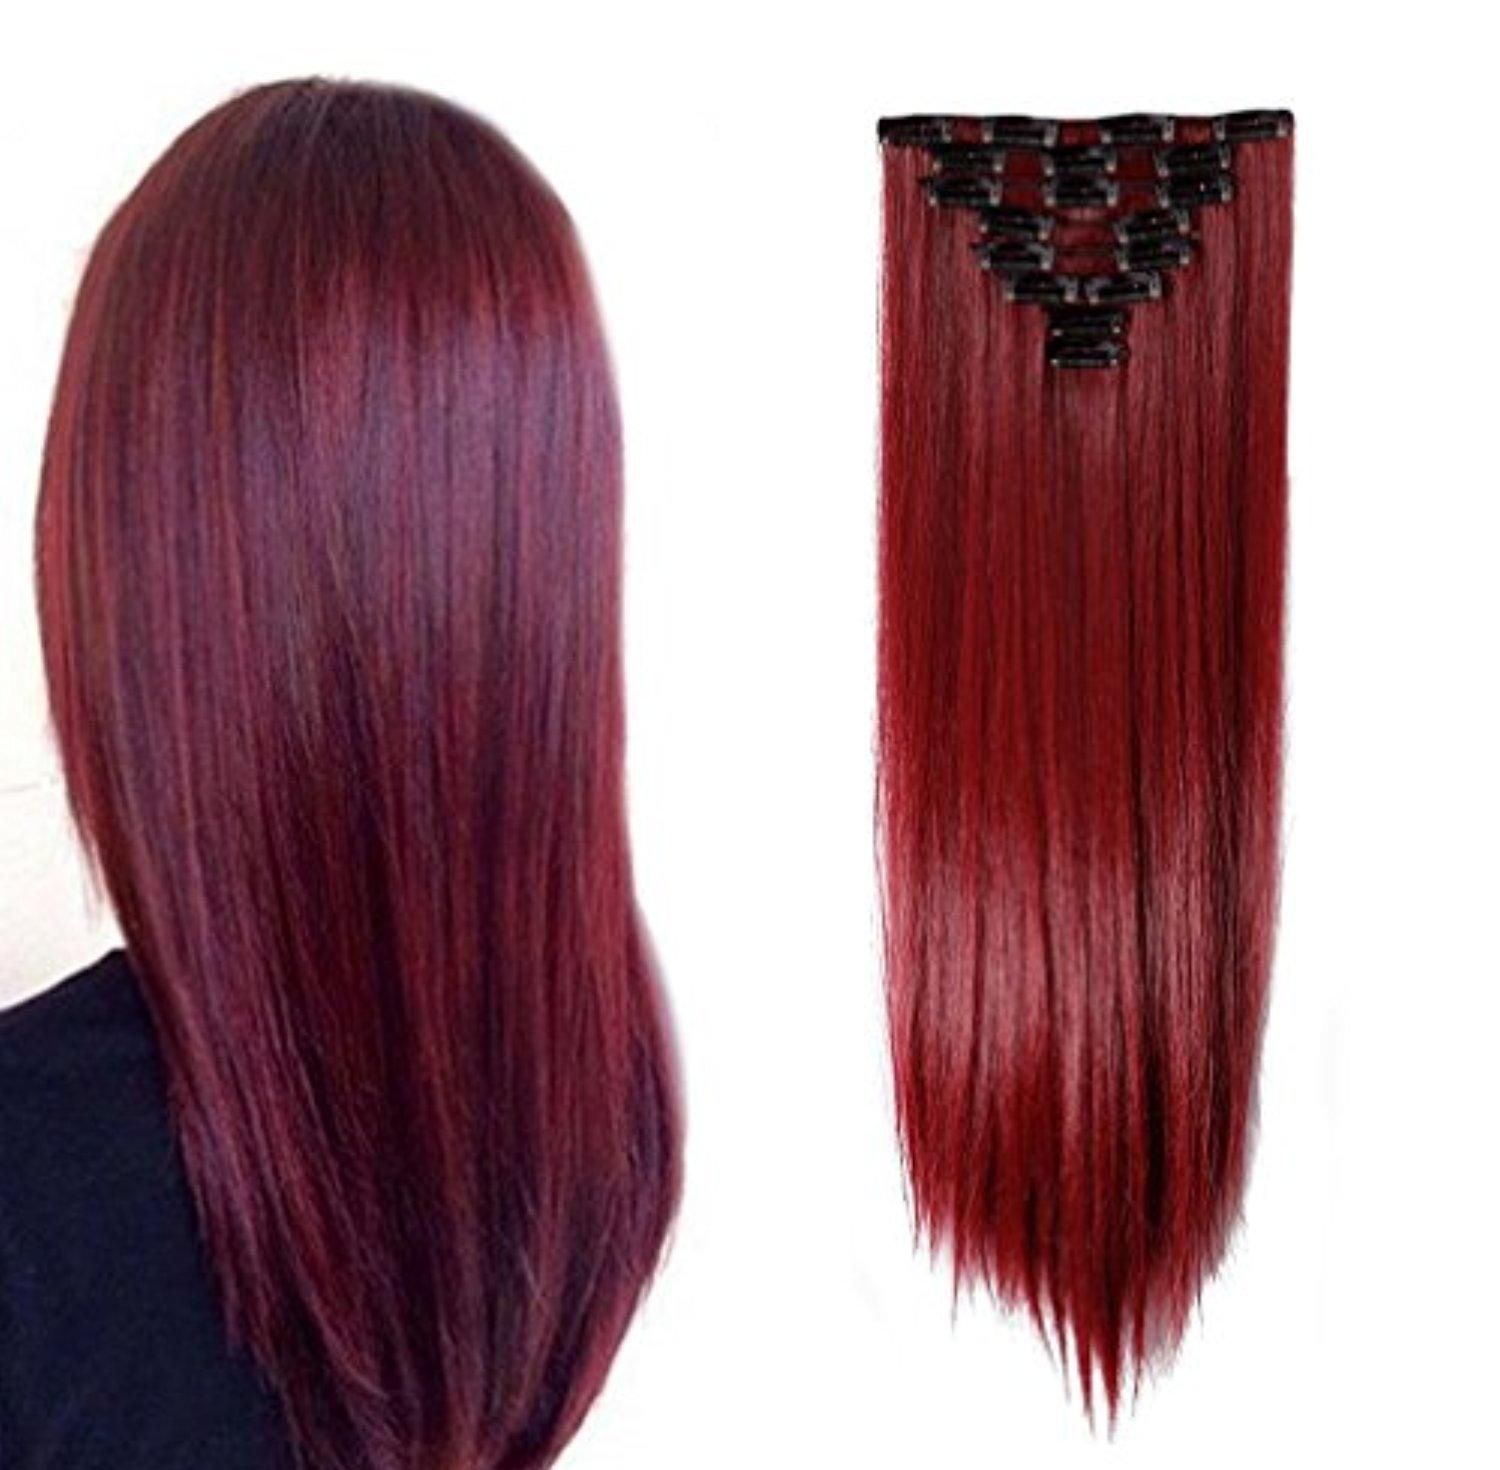 Hairpieces Clip In Synthetic Hair Extensions Japanese Kanekalon